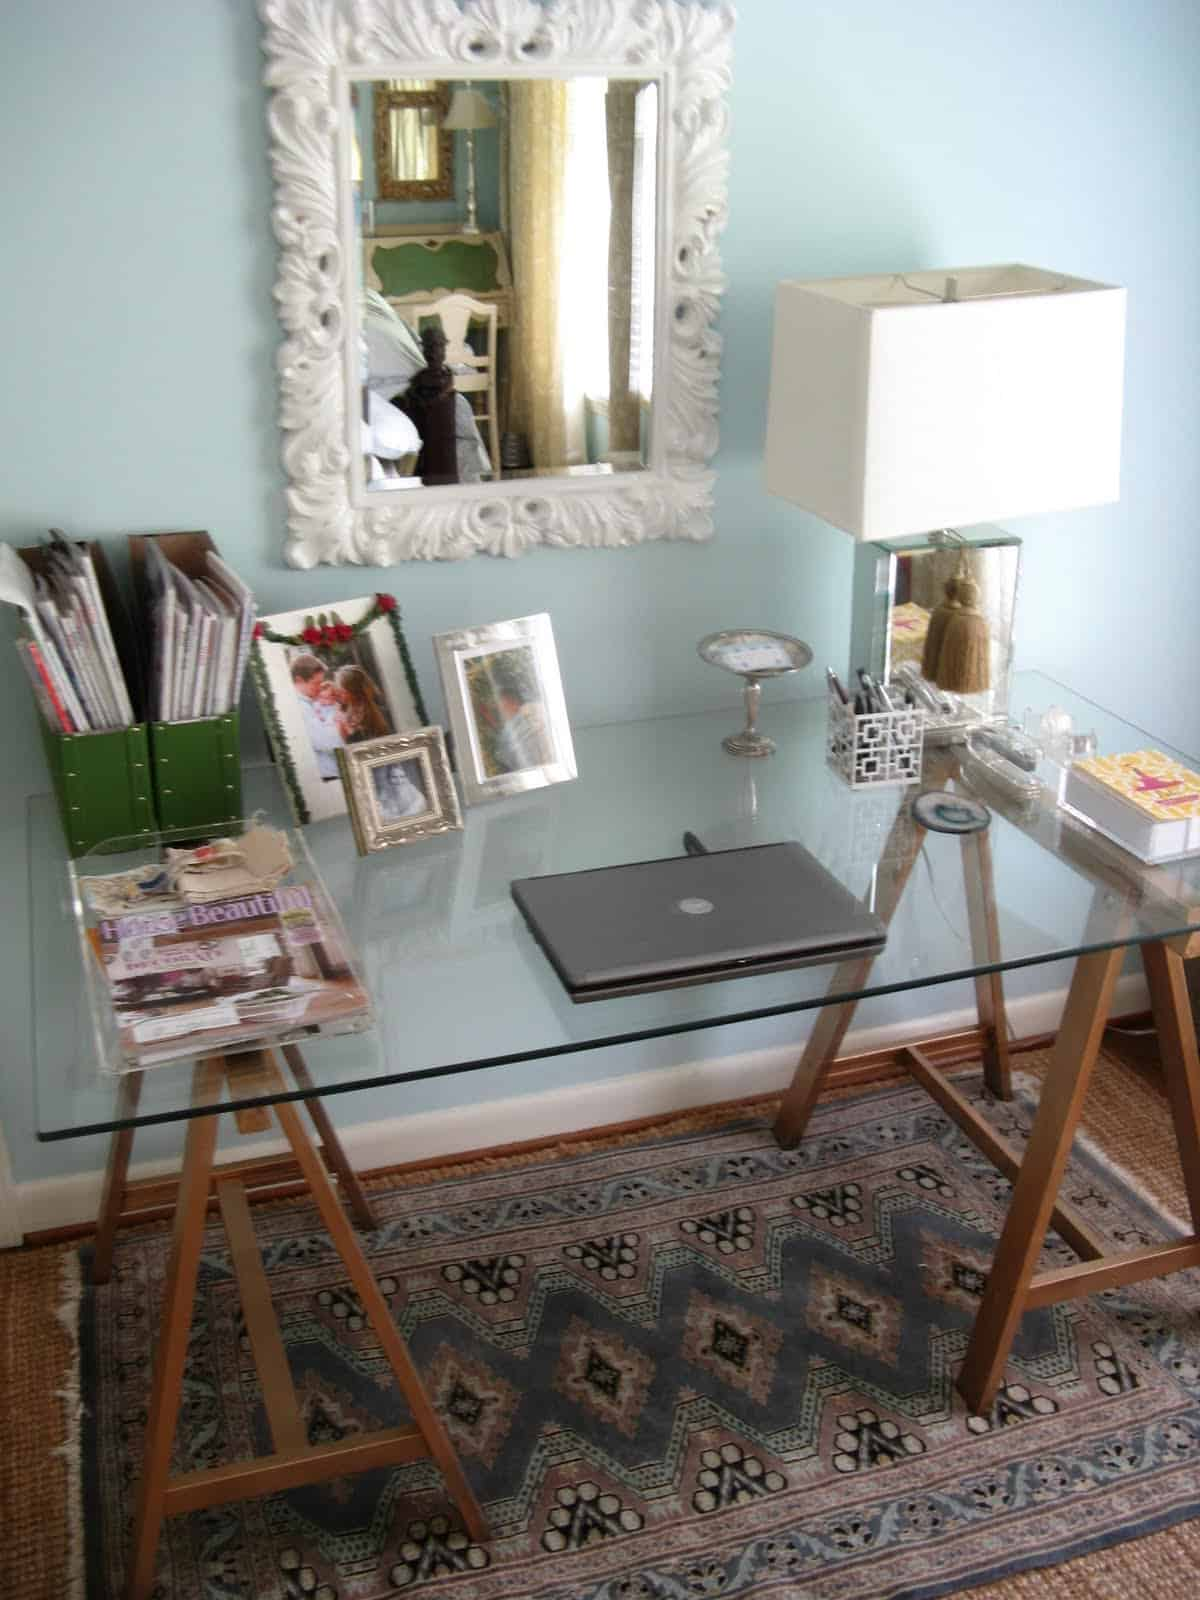 20 Handy Desks Created from IKEA Products